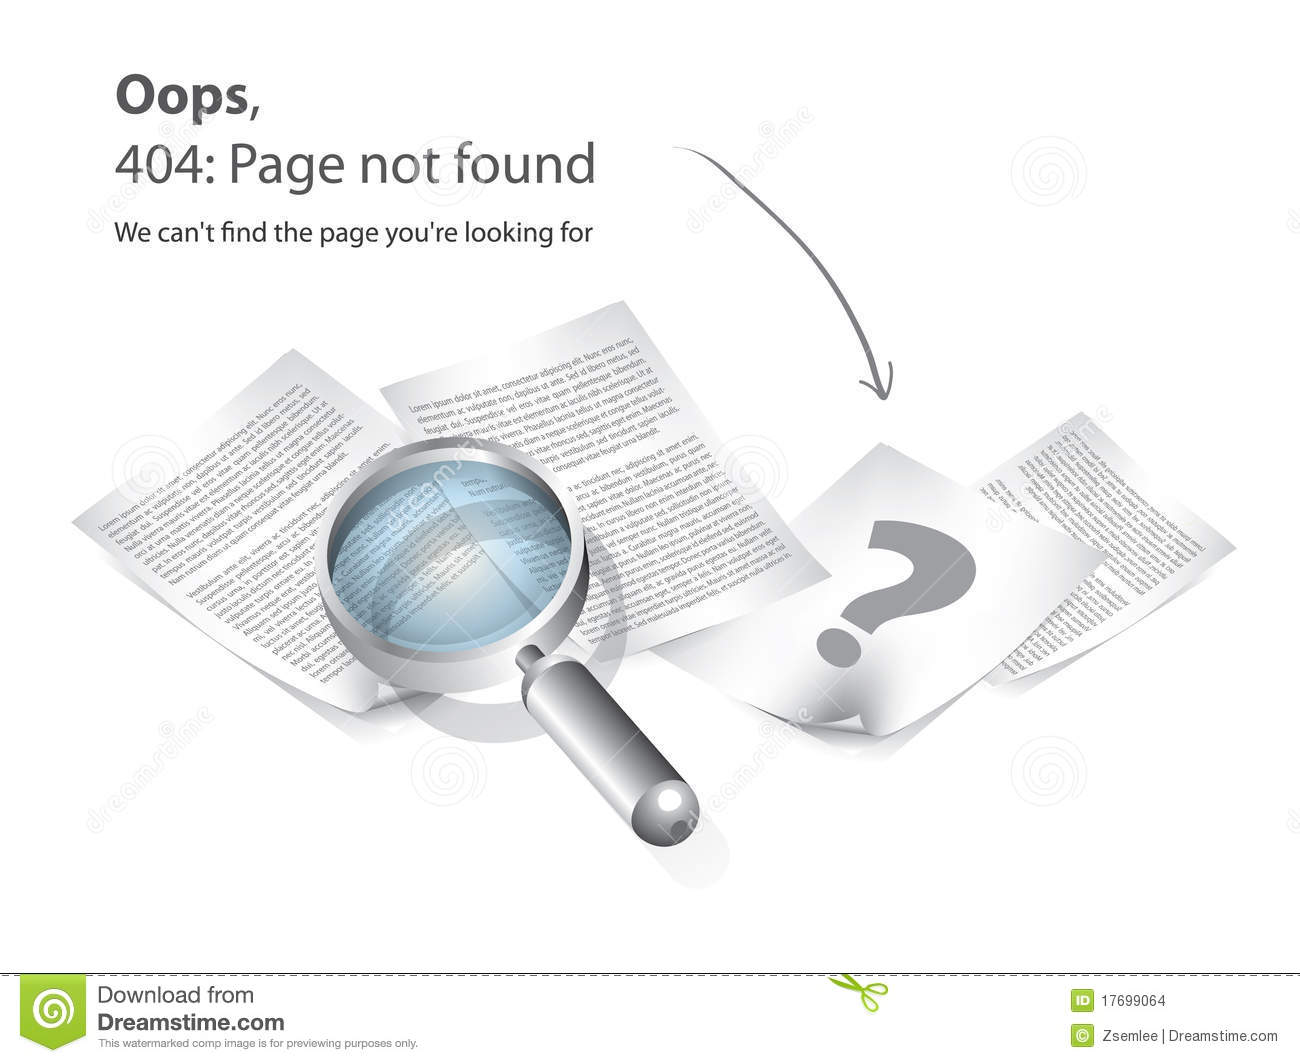 Image 404 page not found on toilet paper roll - 5